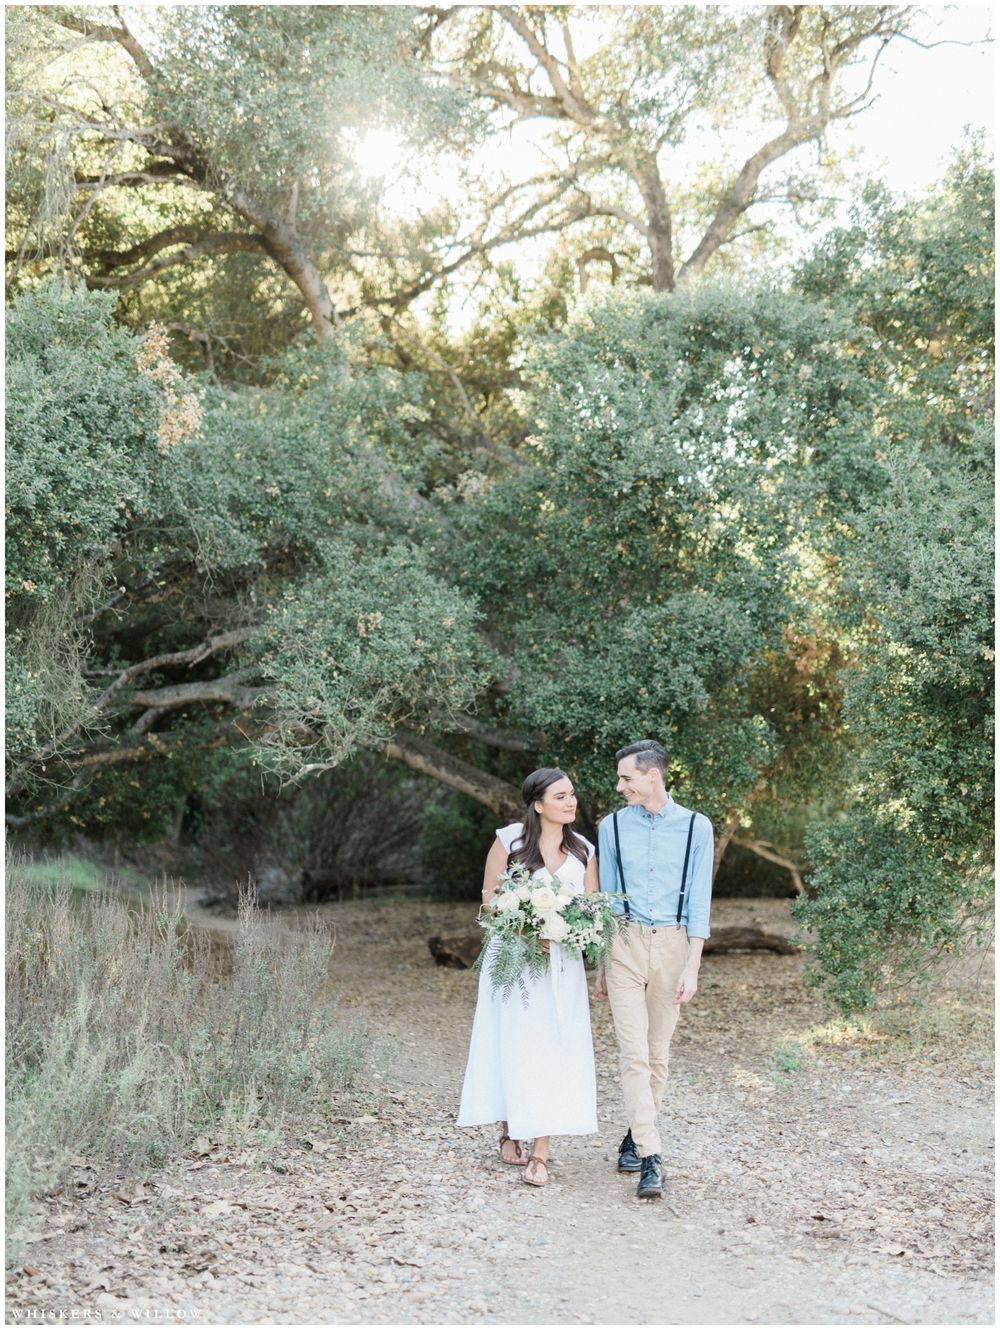 Kinfolk wedding | Rustic wedding | San Diego Fine Art Wedding Photographer | Whiskers and Willow Photography